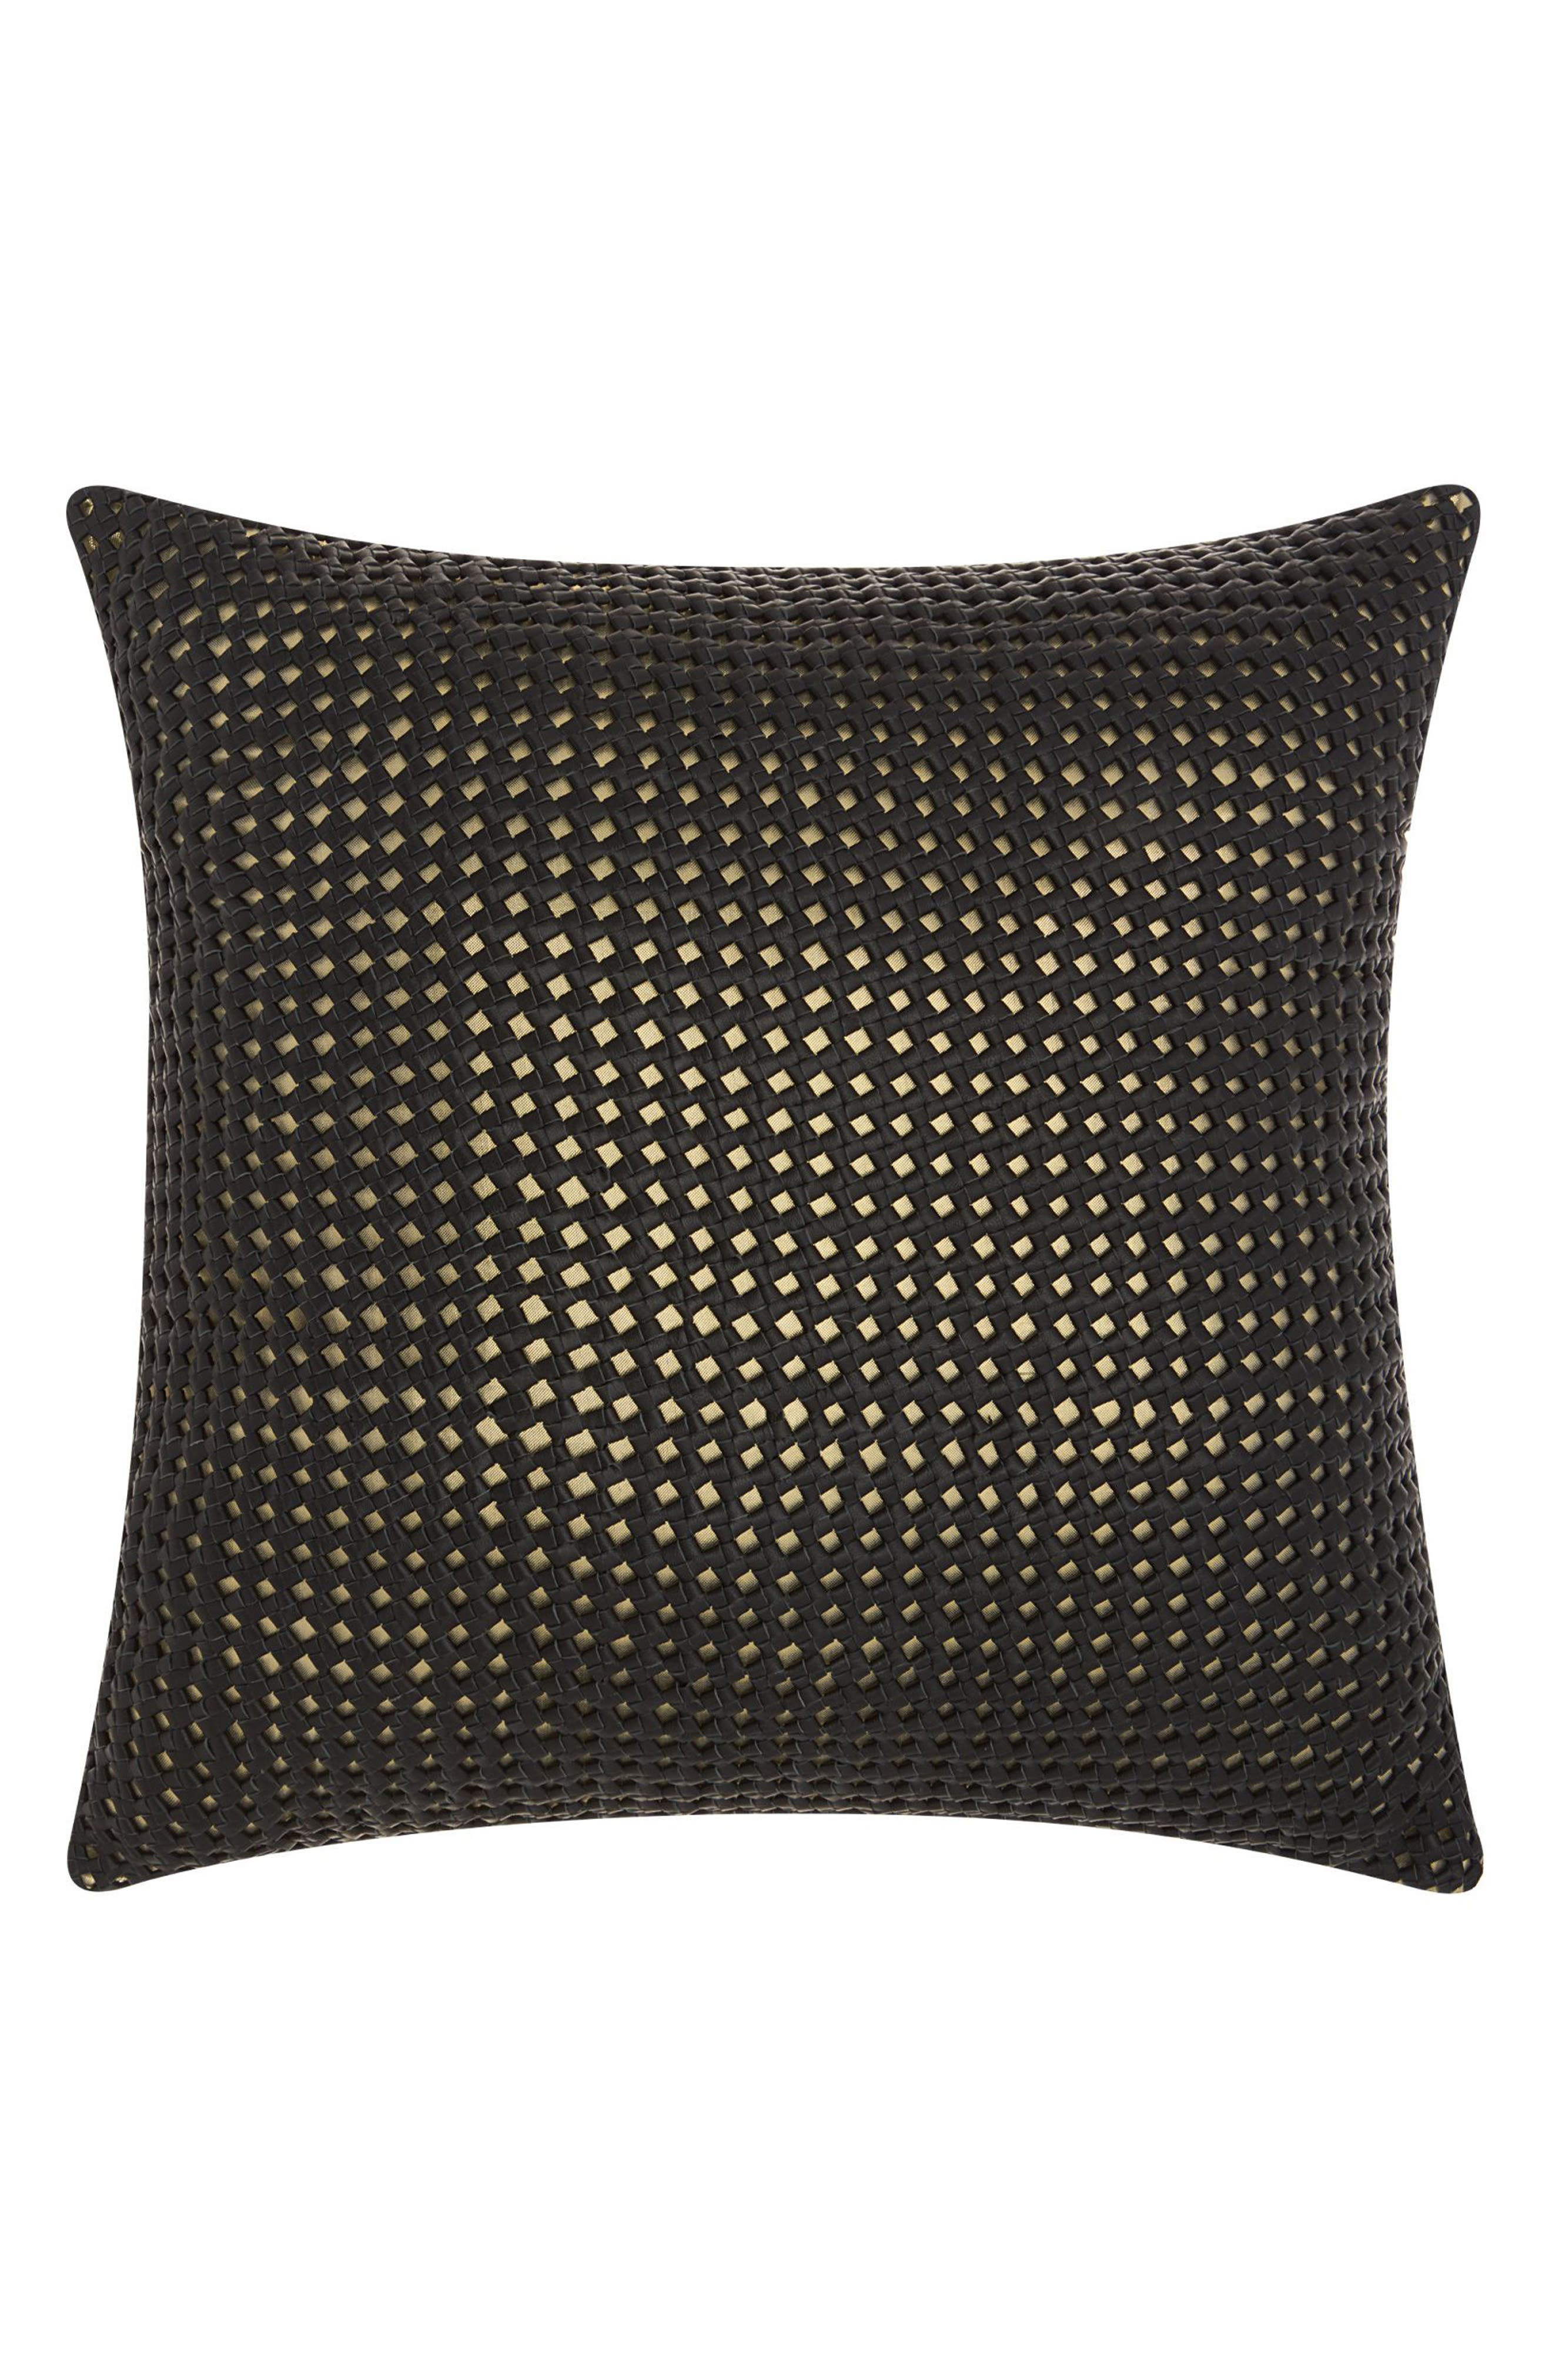 Woven Leather Accent Pillow,                             Main thumbnail 1, color,                             002